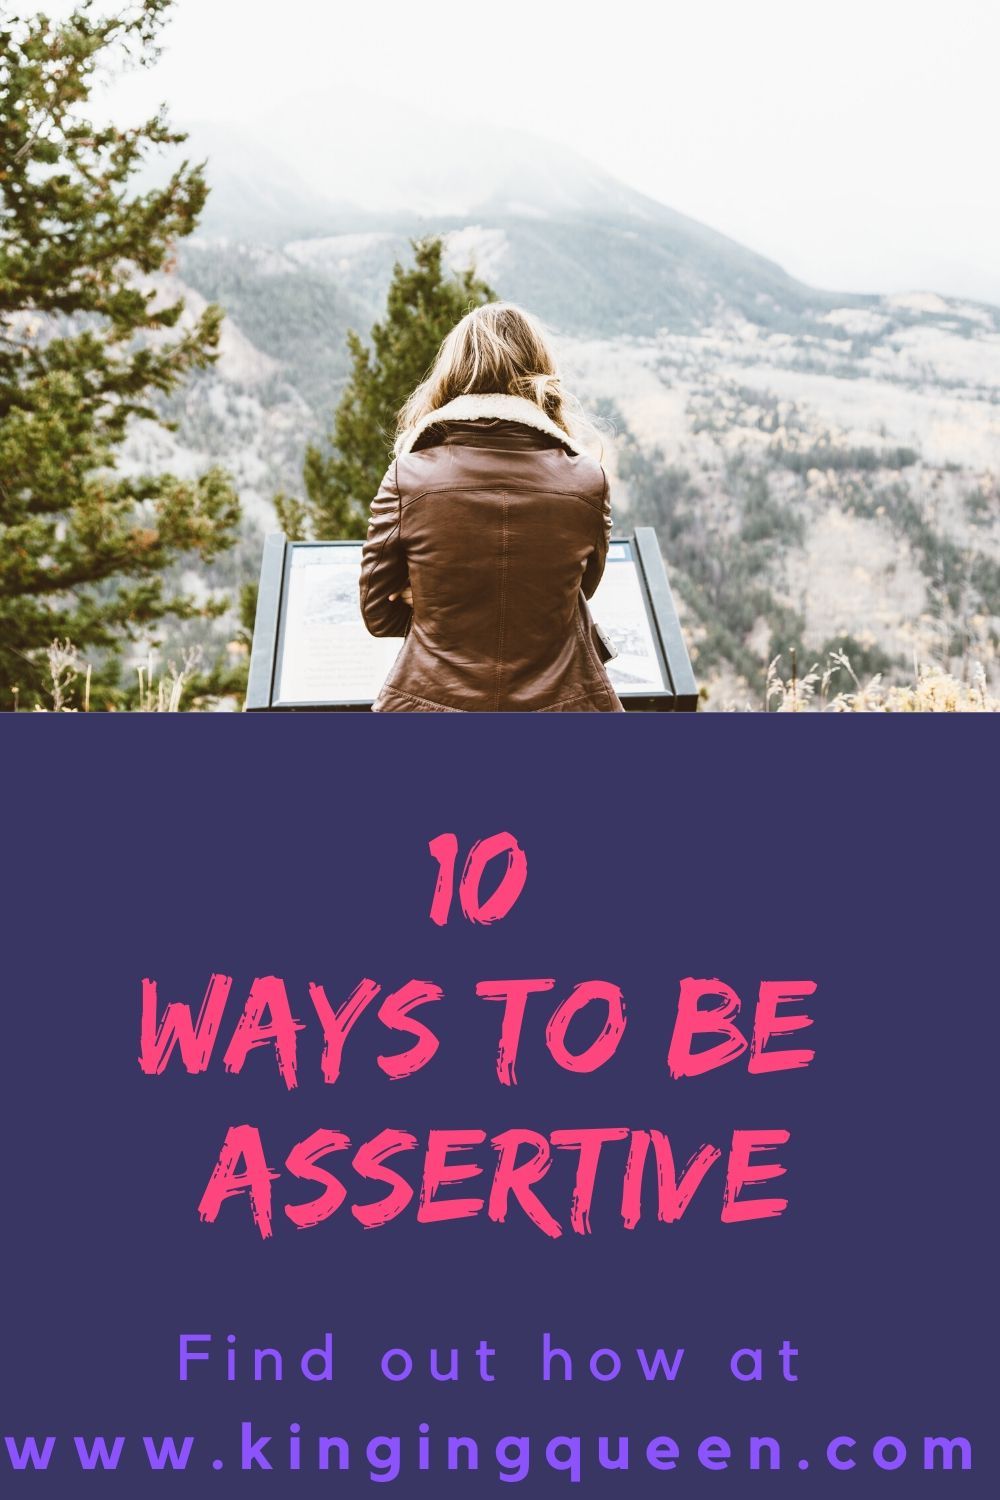 Graphics showing 10 tips to being assertive